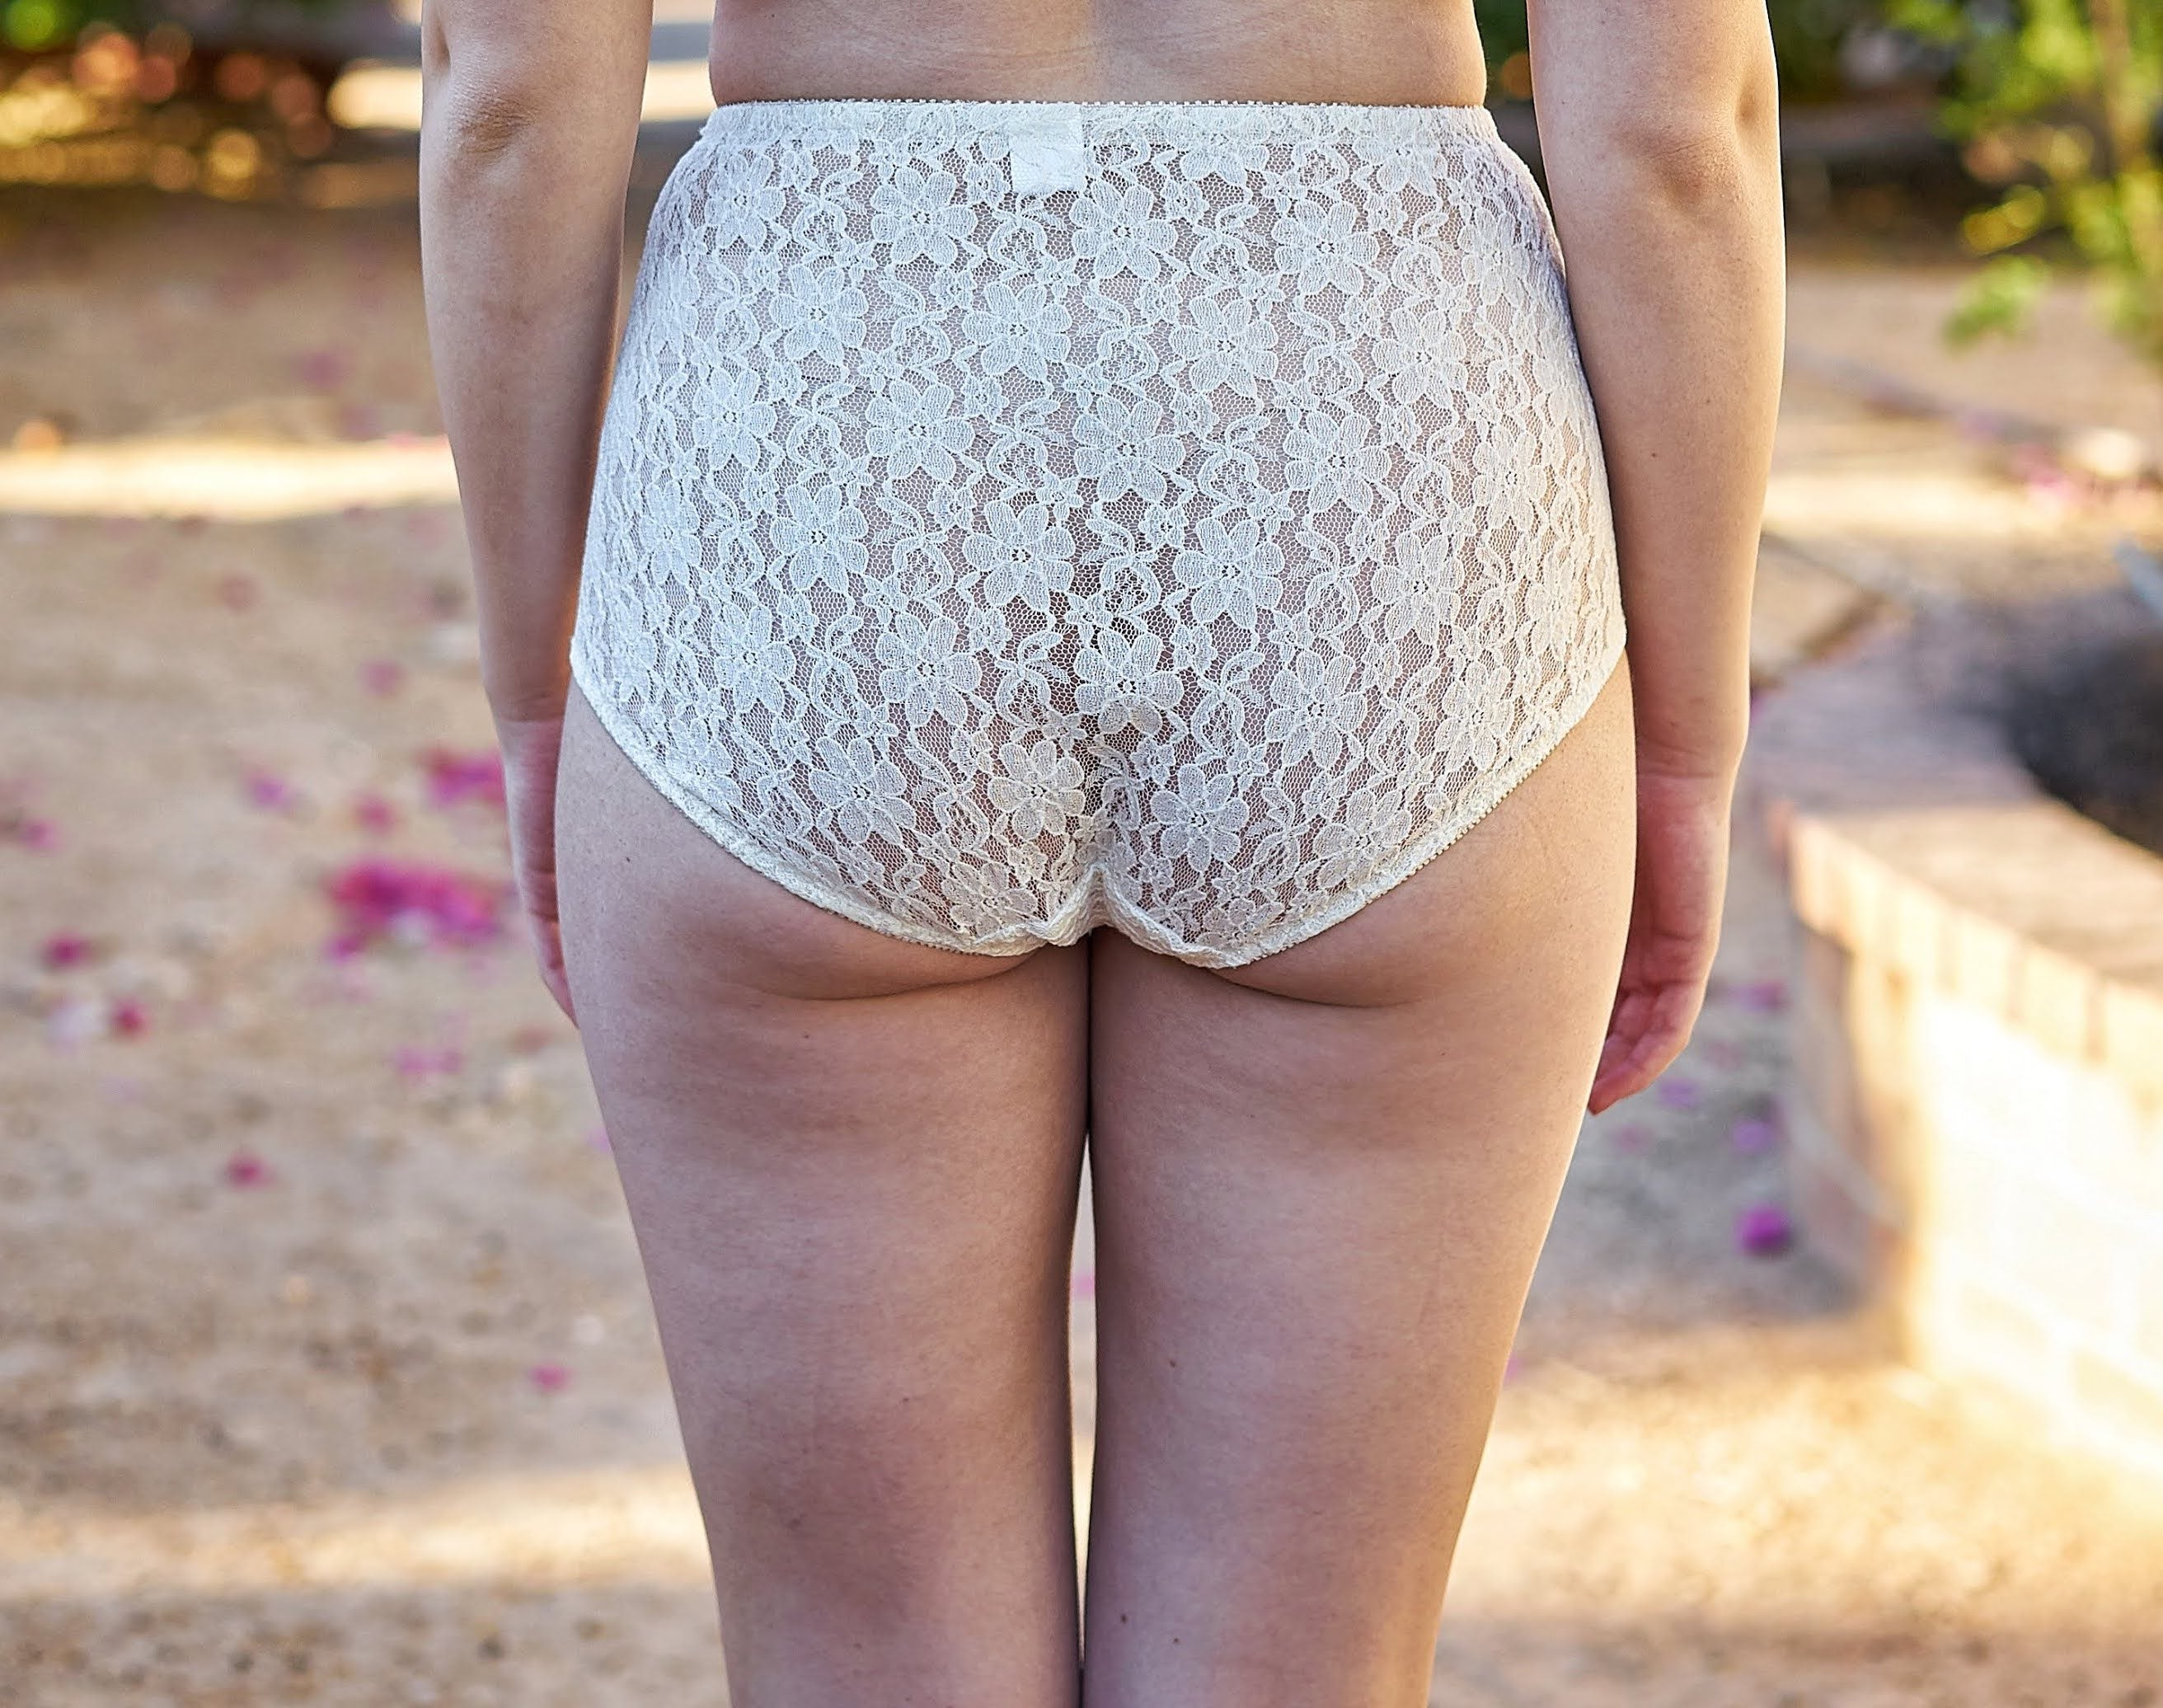 Gwendolyn high waisted panty | Applause Lingerie - Sustainable, Ethical Lingerie